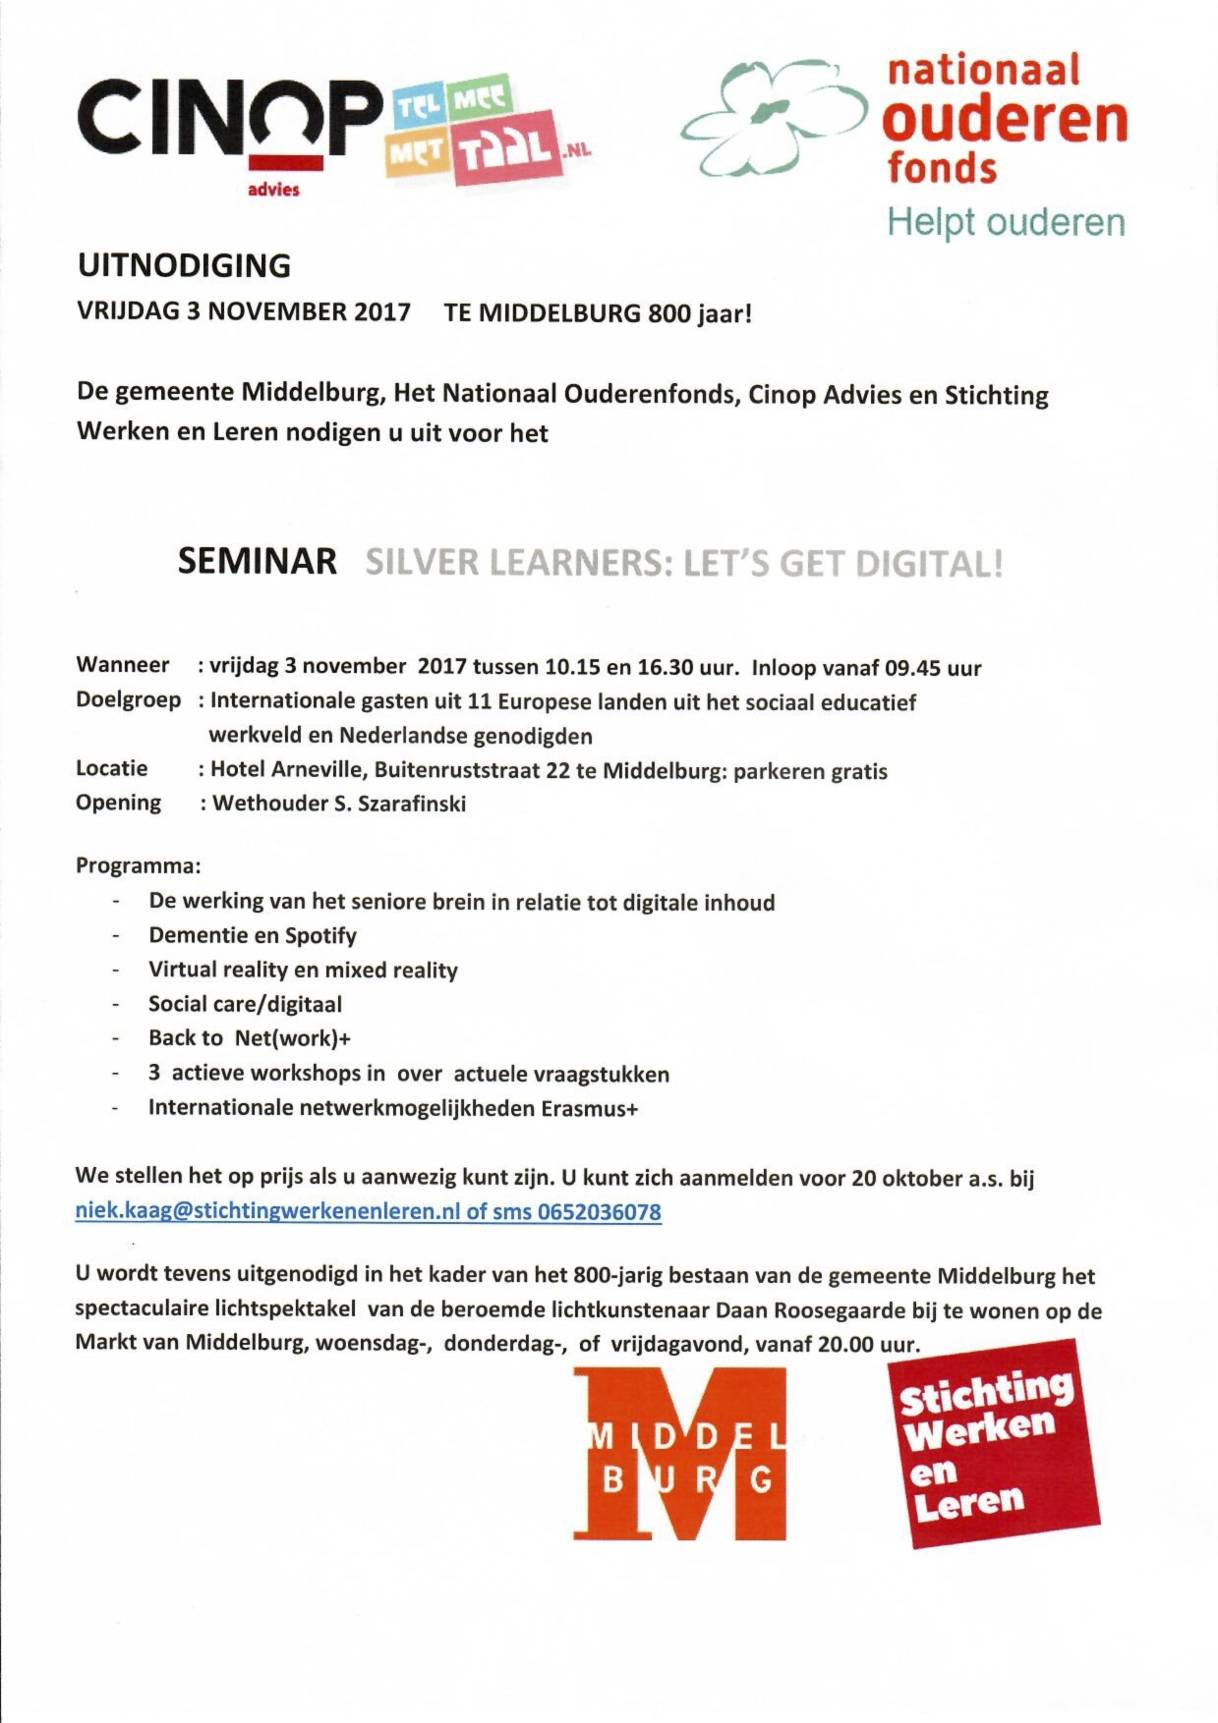 Uitnodiging Seminar Silver Learners